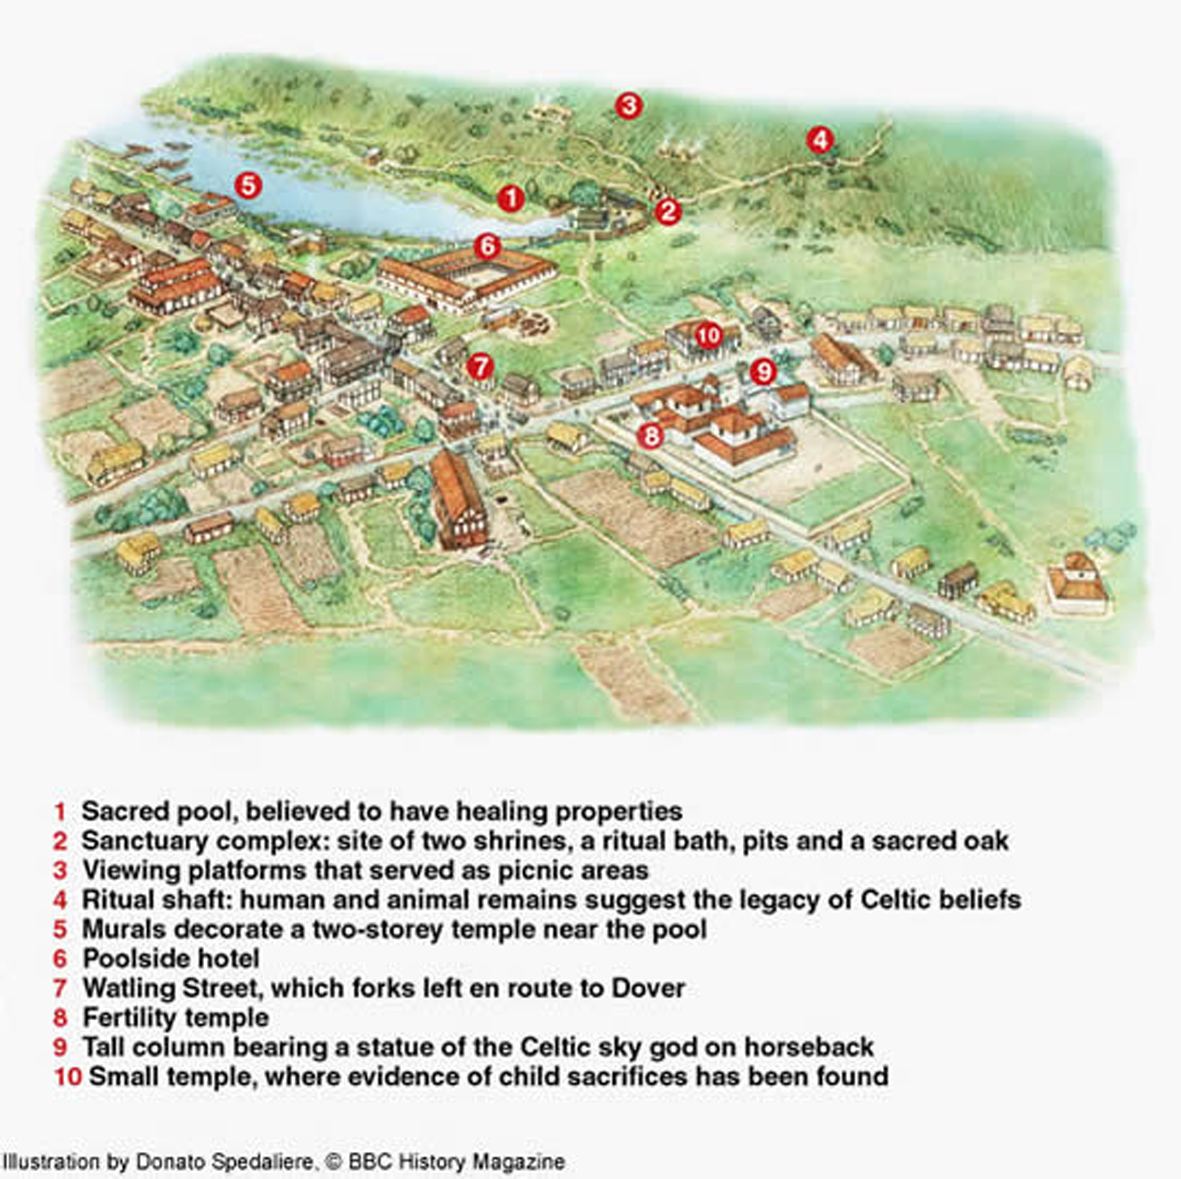 The Roman settlement of Springhead - Illustration by Donato Spedaliere (in collaboration with G. L. A Albertini, S. S. Spedaliere)